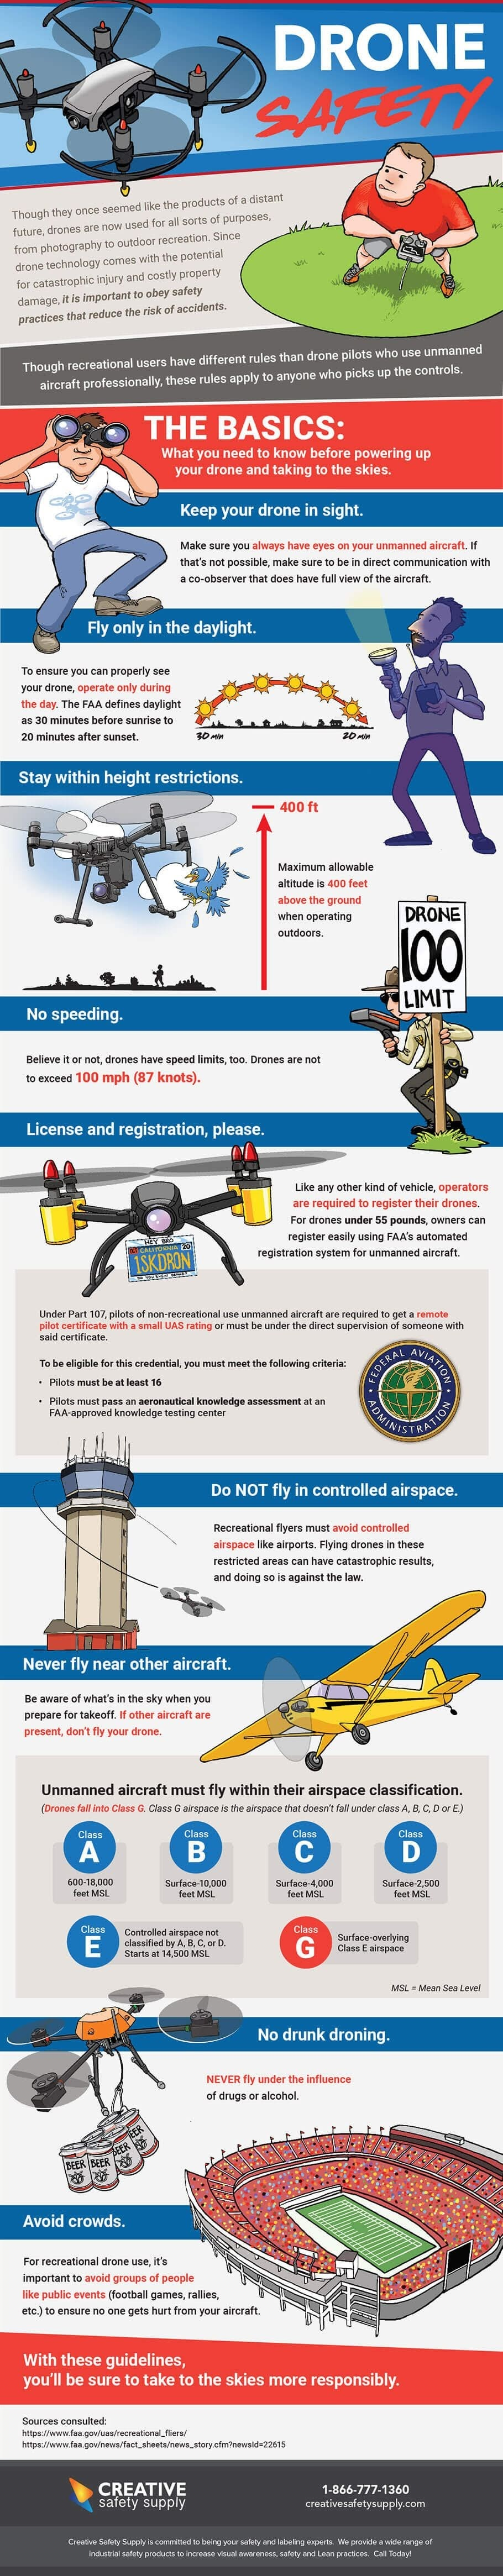 Tips for Drone Safety #infographic